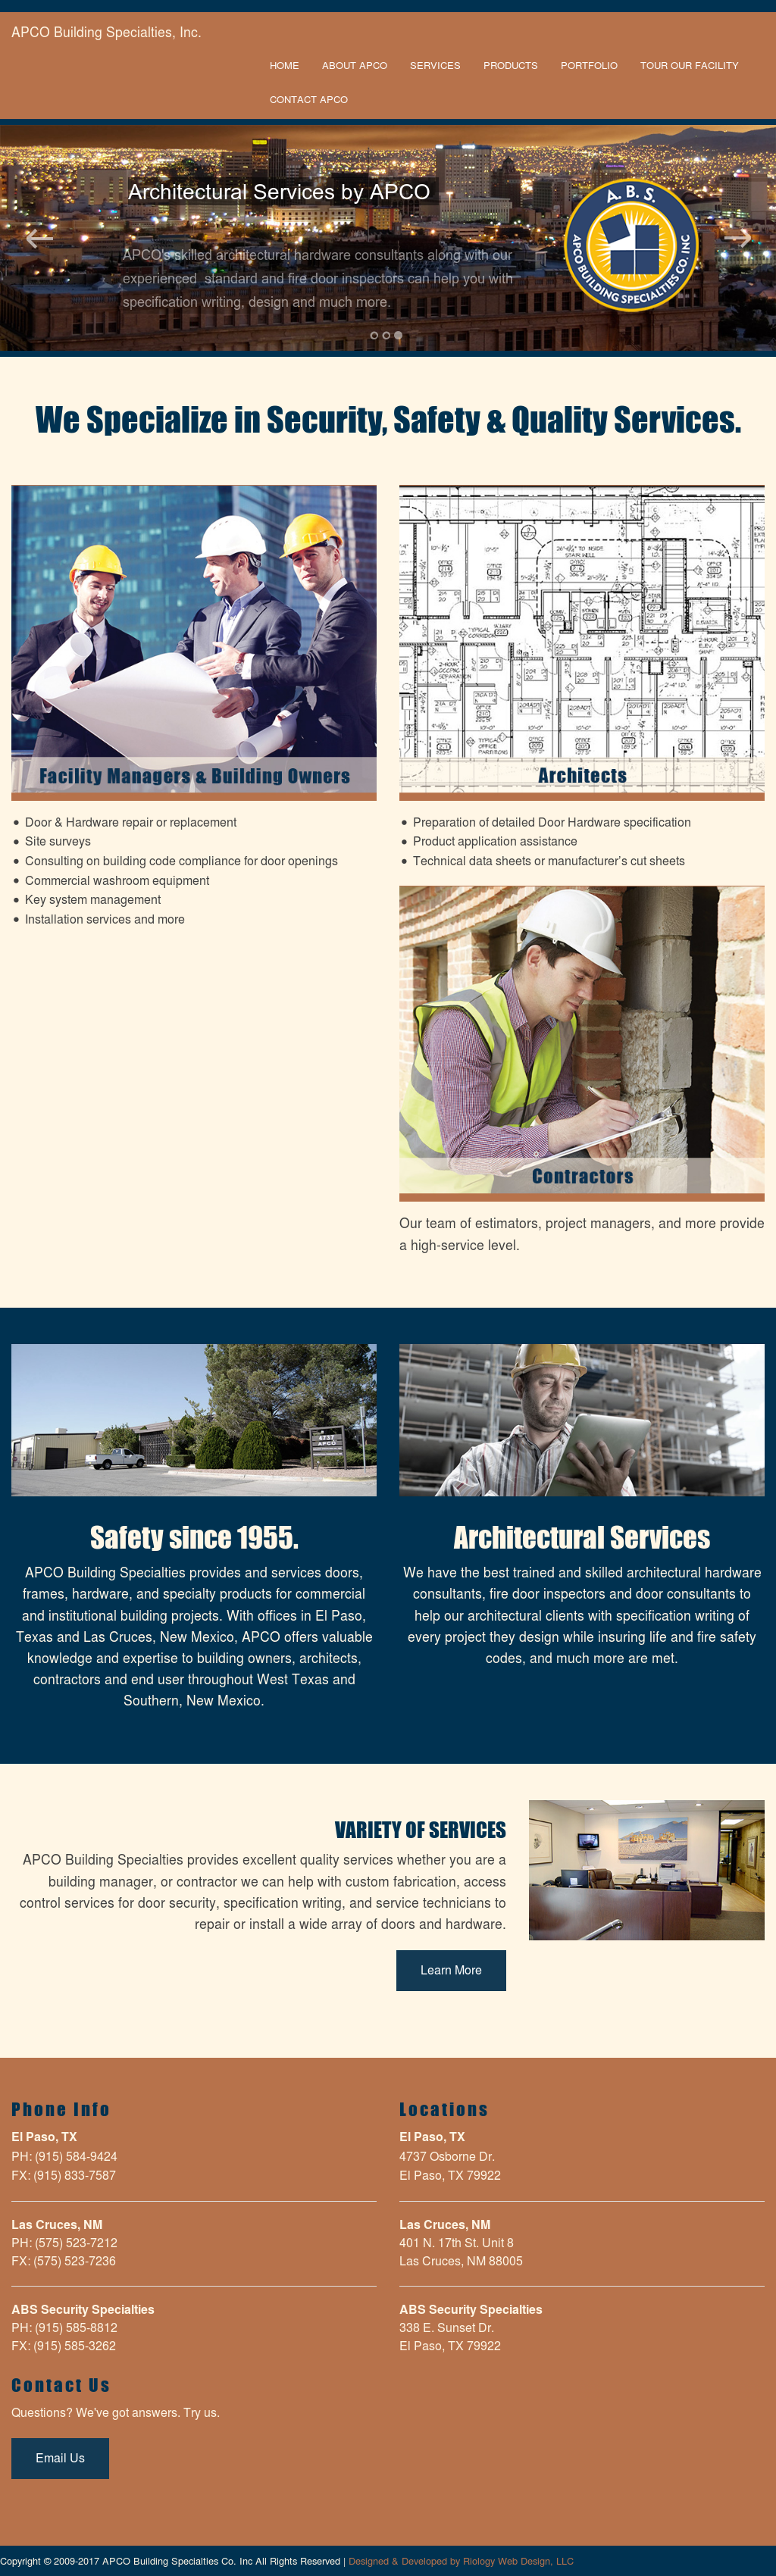 Apco Building Specialties Website History